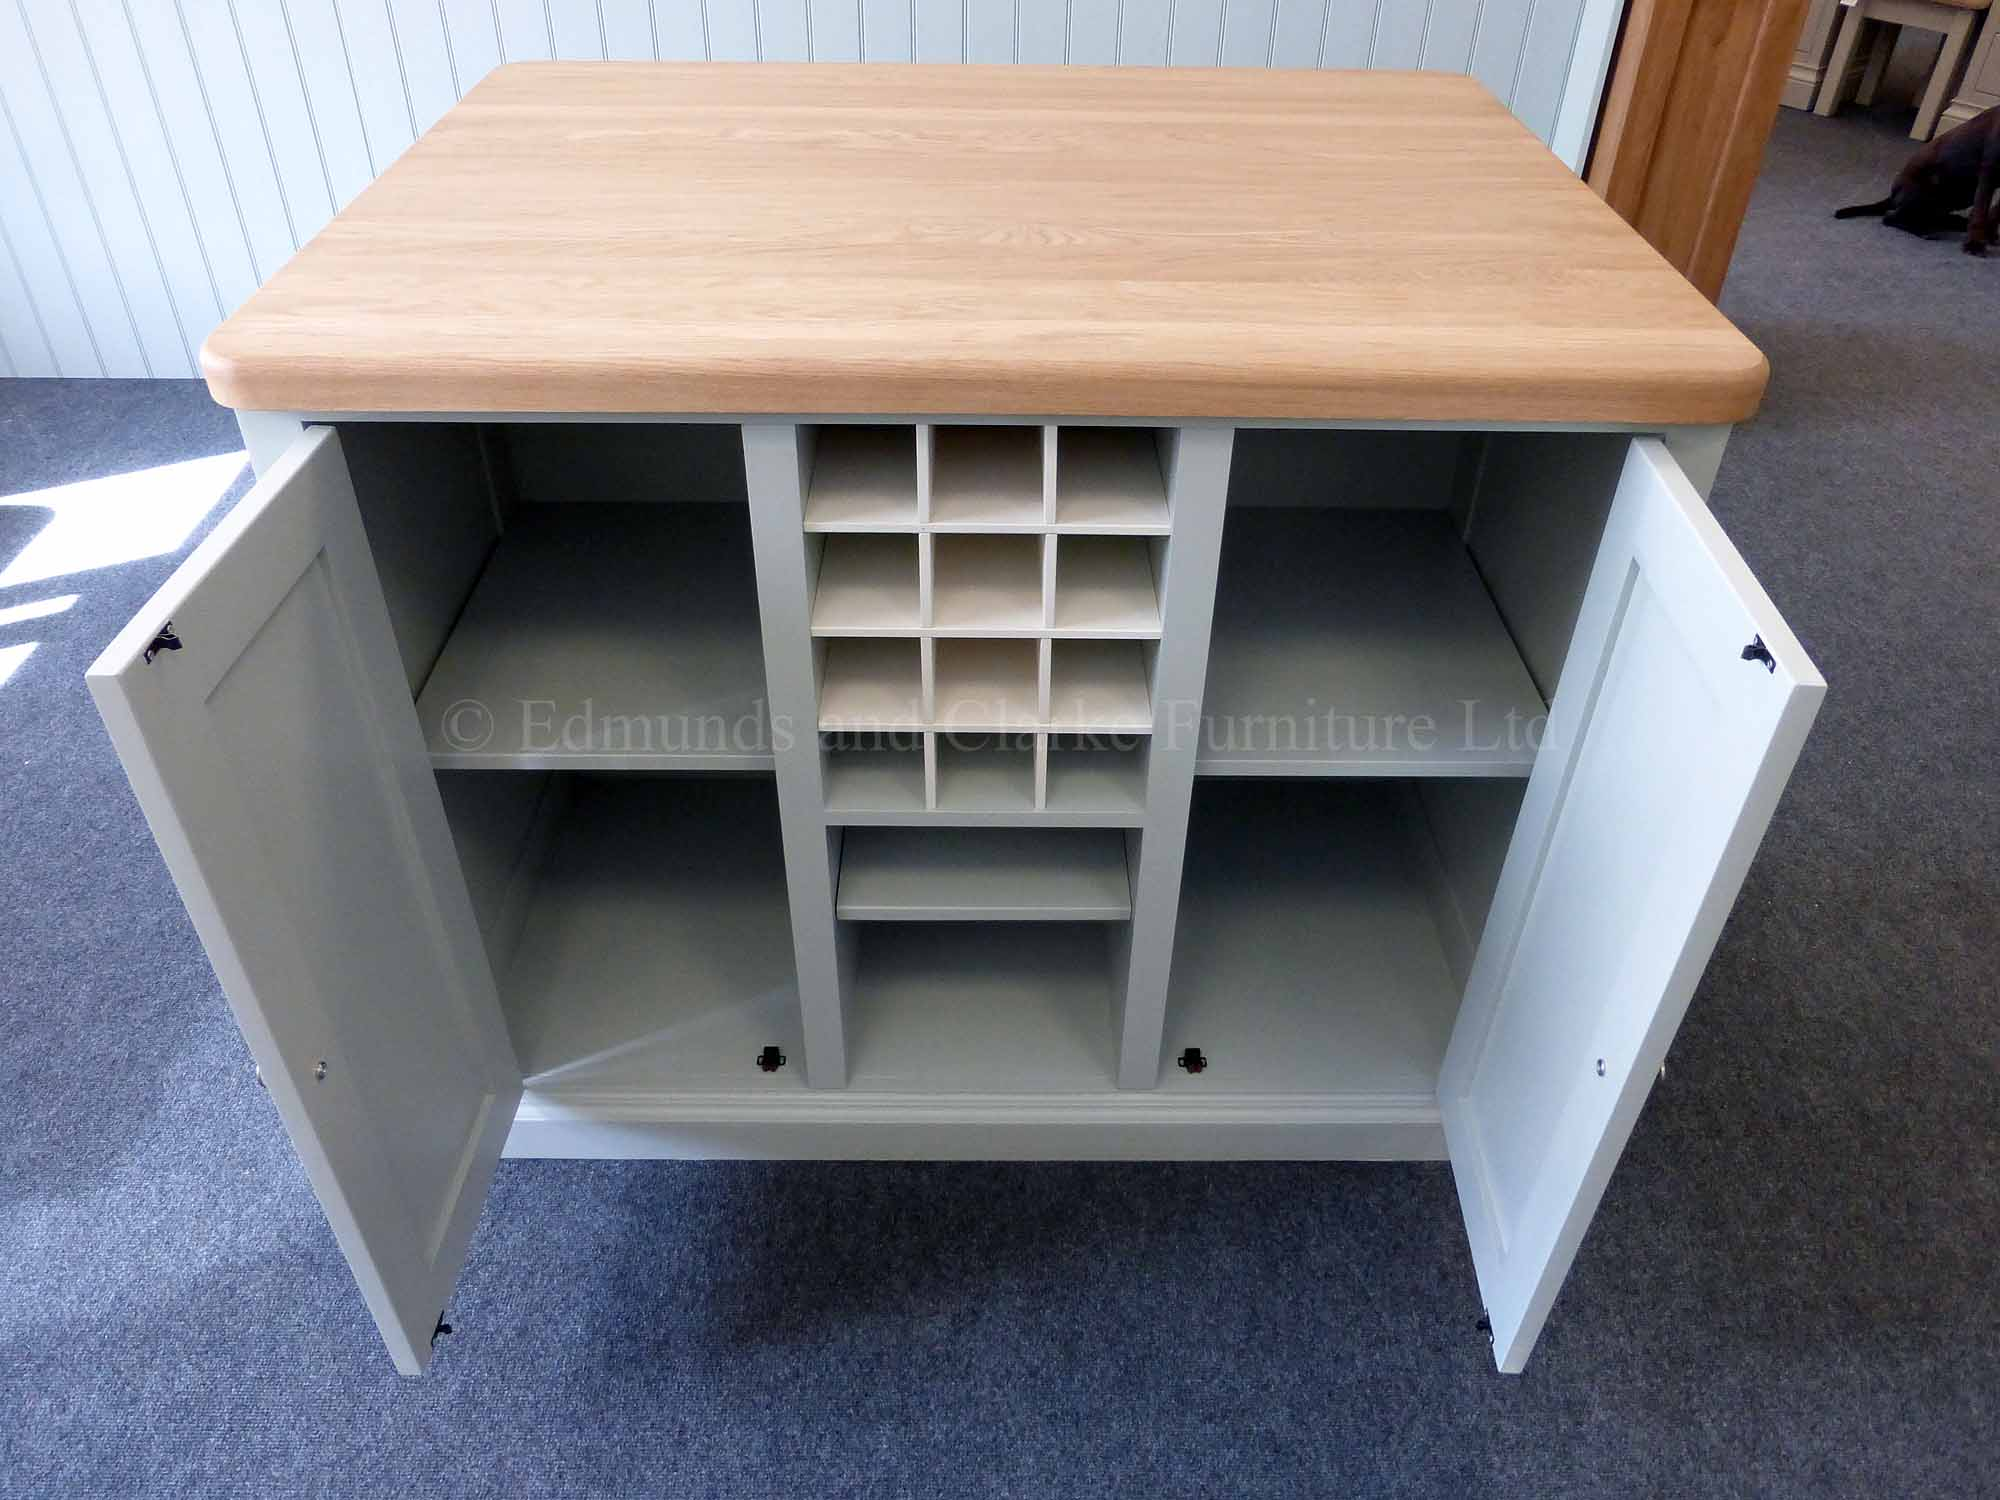 Edmunds painted 4ft x 3ft kitchen Island in Southwold Sky Blue. Solid oak top. Central shelves and wine rack with 2 paneled doors and on other side a overhang for stools. Image showing doors open EDM008